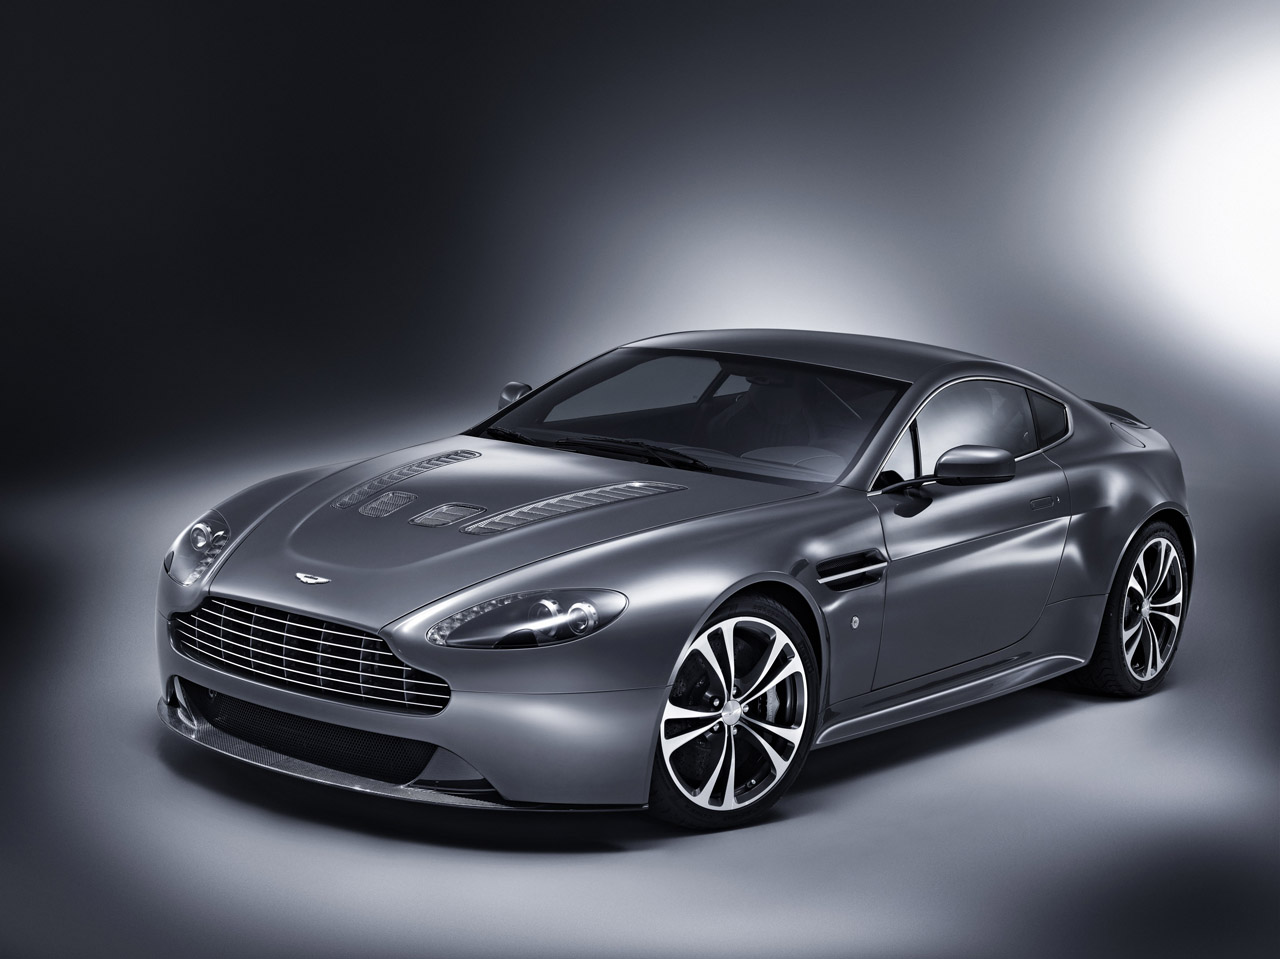 aston martin v8 car sports car racing car luxury sports cars indian car. Black Bedroom Furniture Sets. Home Design Ideas